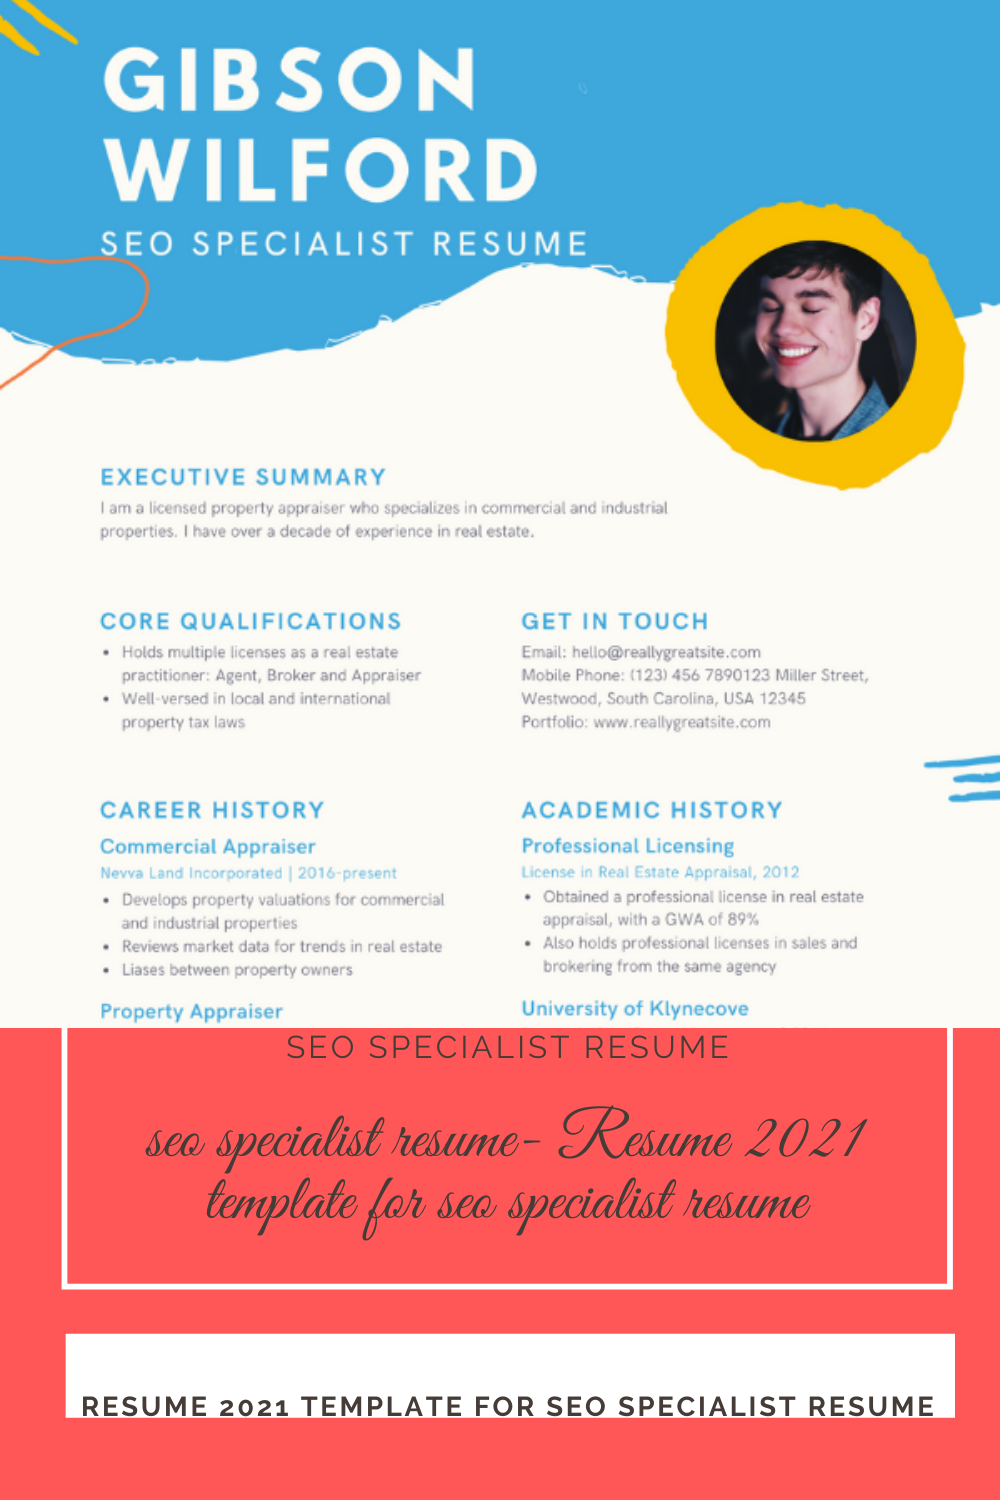 Seo Specialist Resume Resume 2021 Template For Seo Specialist Resume In 2021 Resume Seo Specialist Resume Template